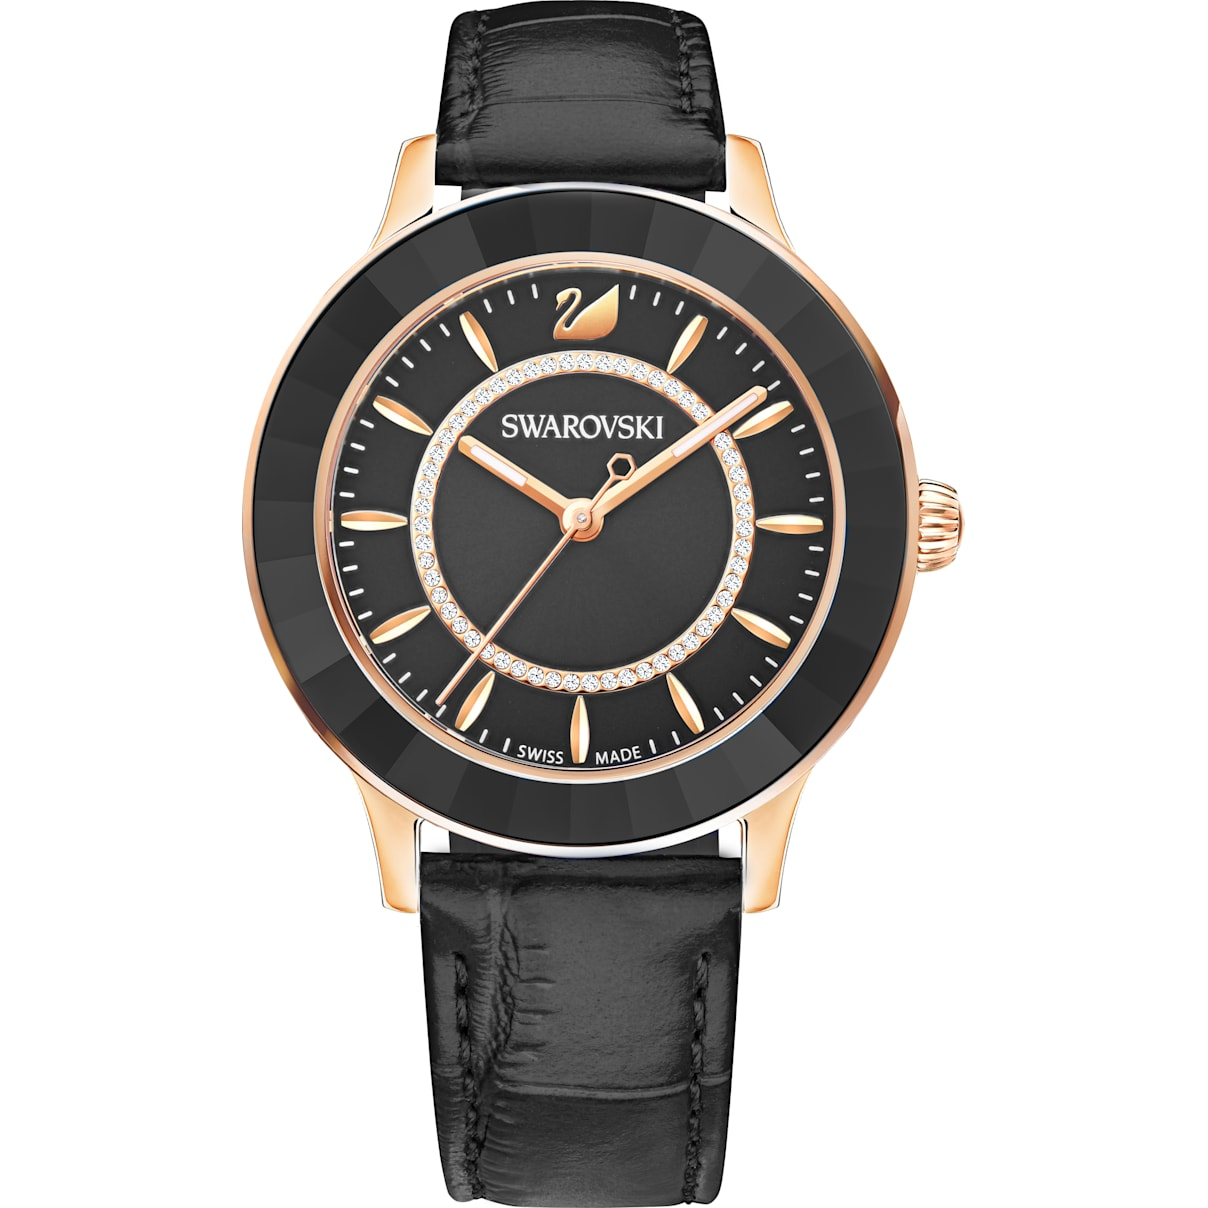 Swarovski Octea Lux Watch, Leather strap, Black, Rose-gold tone PVD